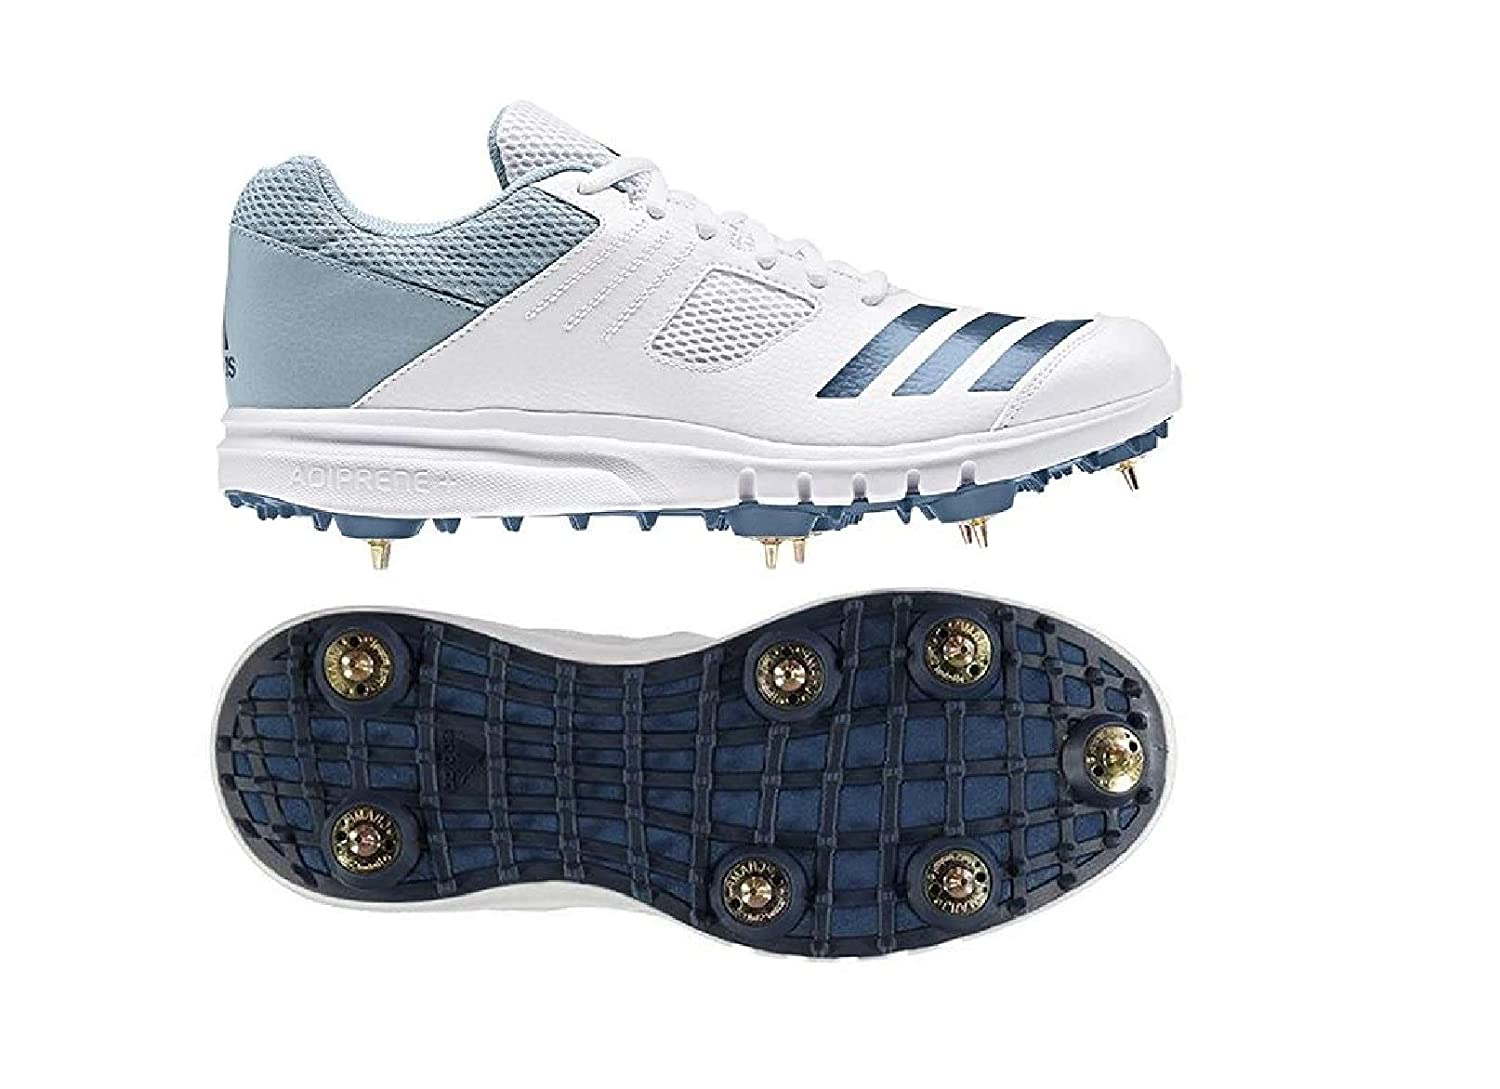 Buy Adidas Men's Howzat Spike Cricket Shoes at Amazon.in